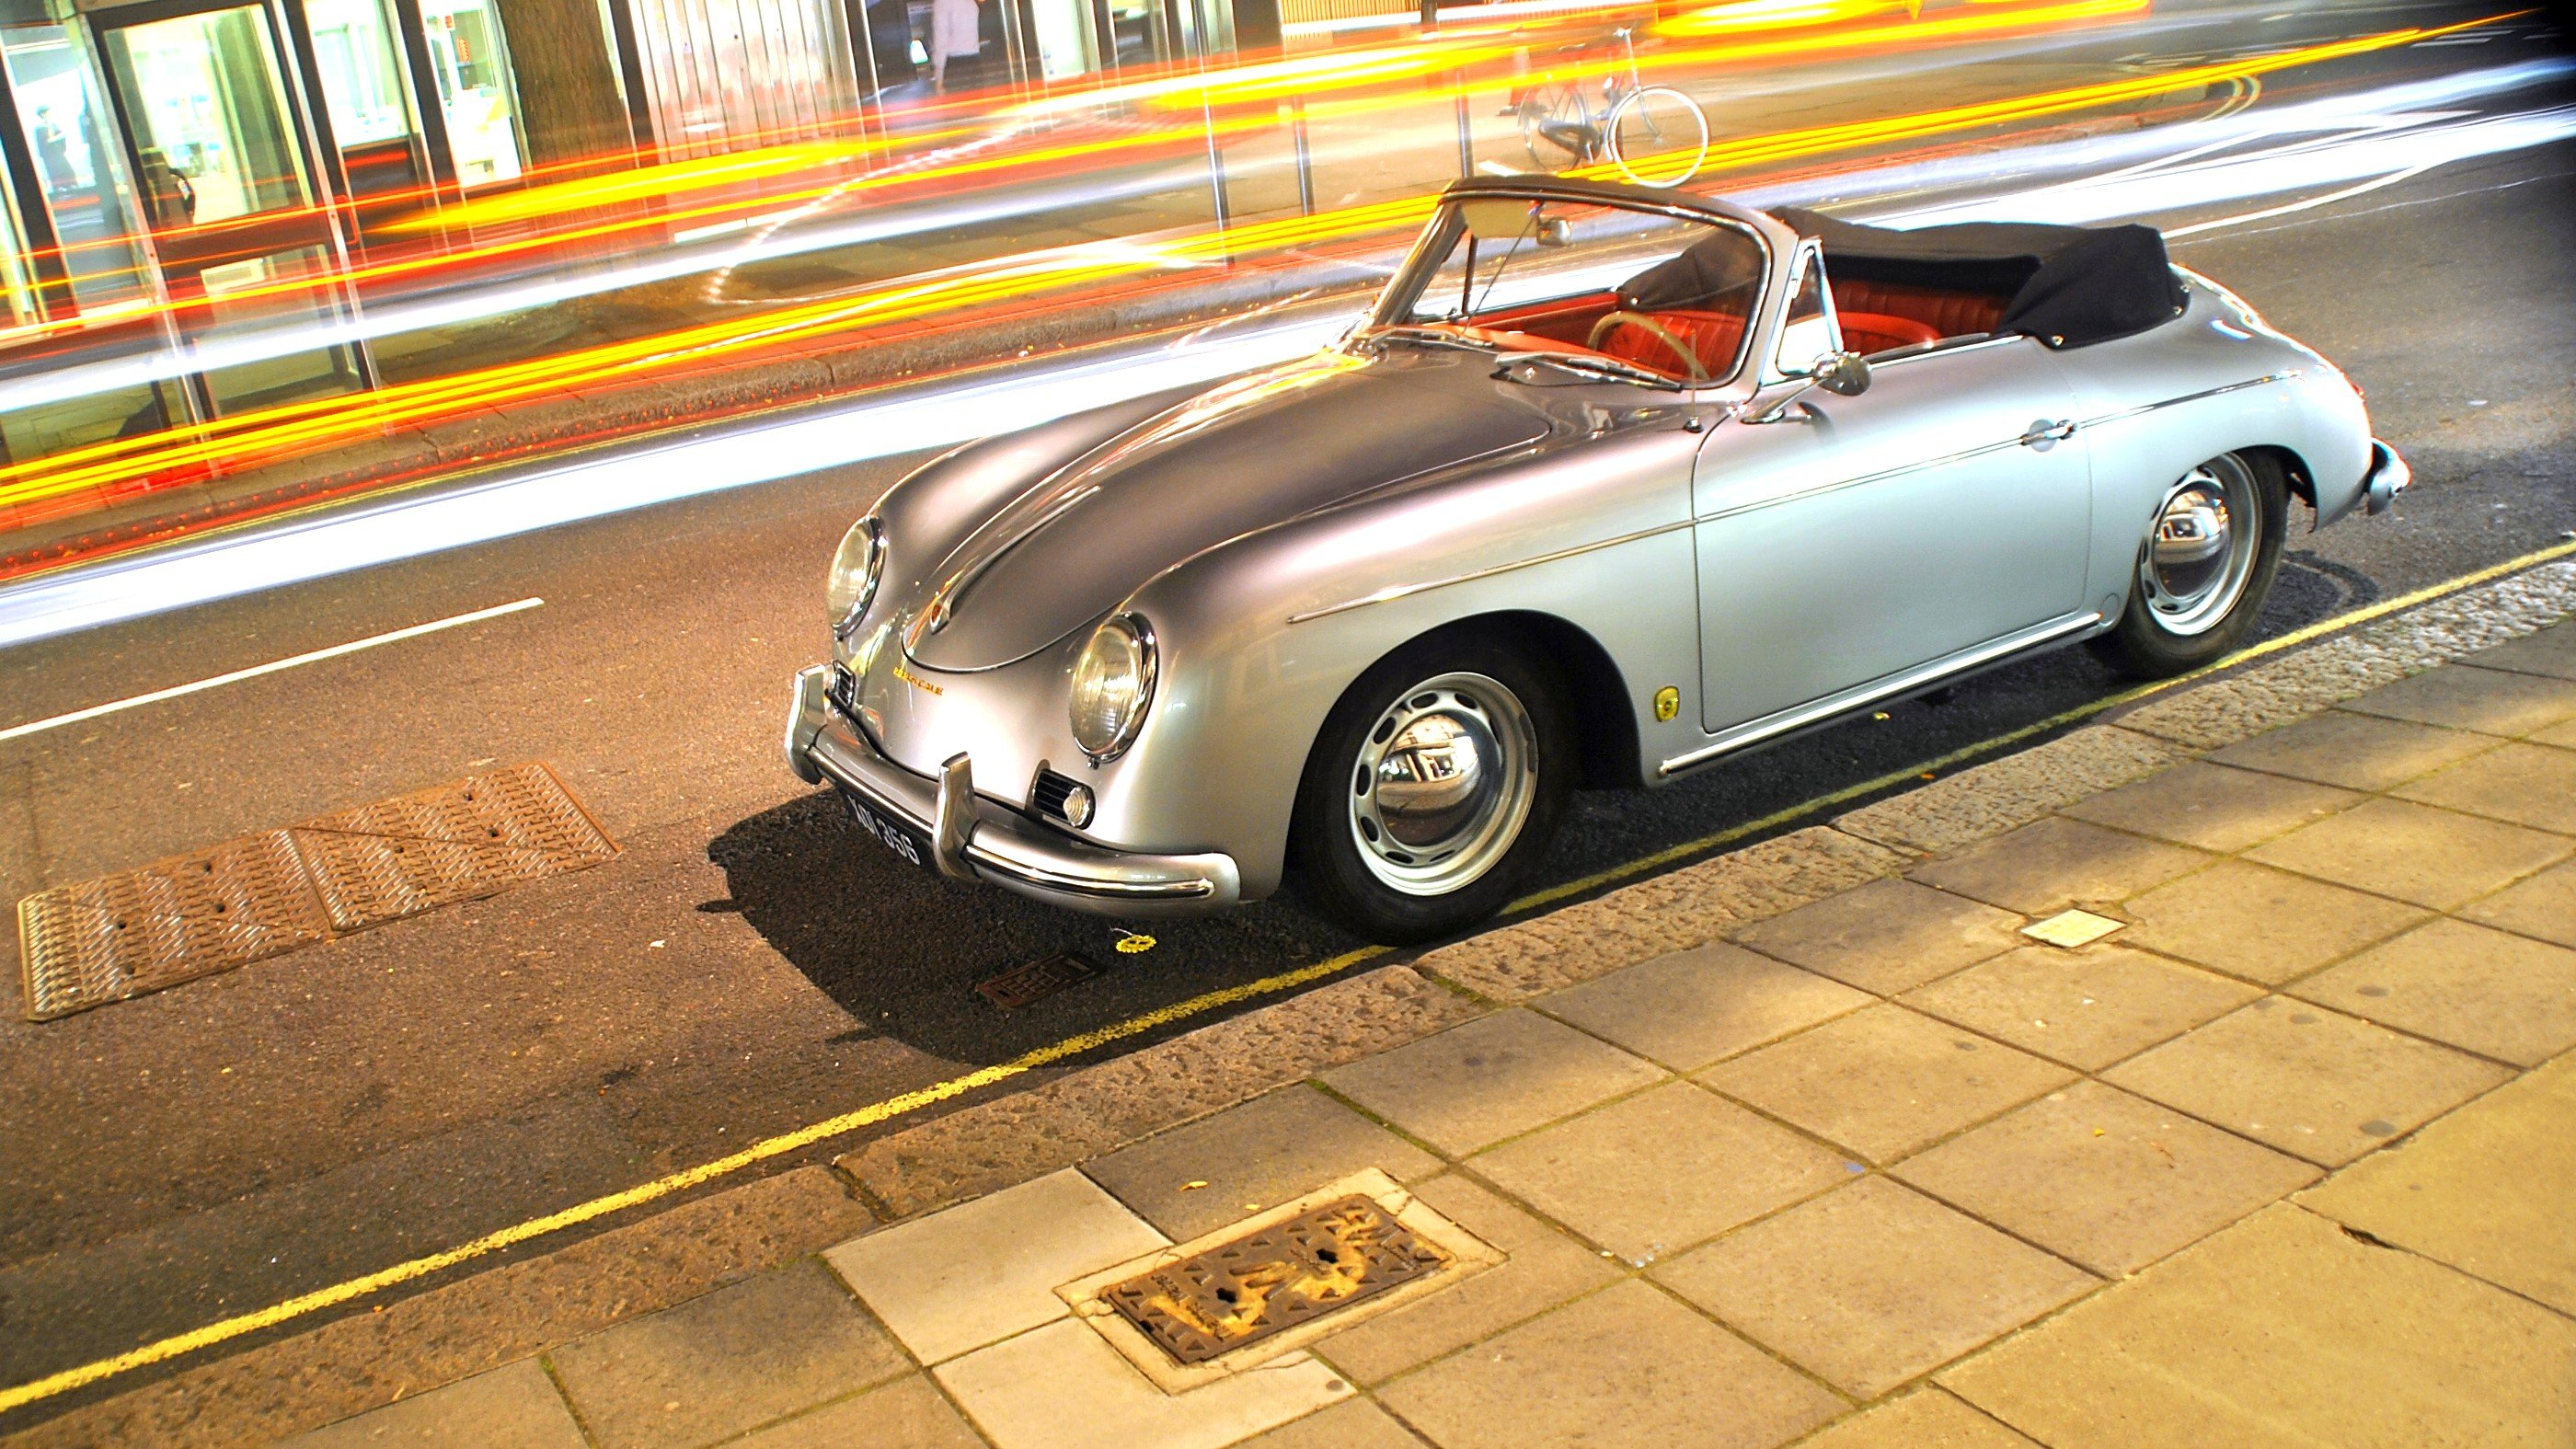 The Timeless Porsche 356 Speedster Is An Iconic Car With